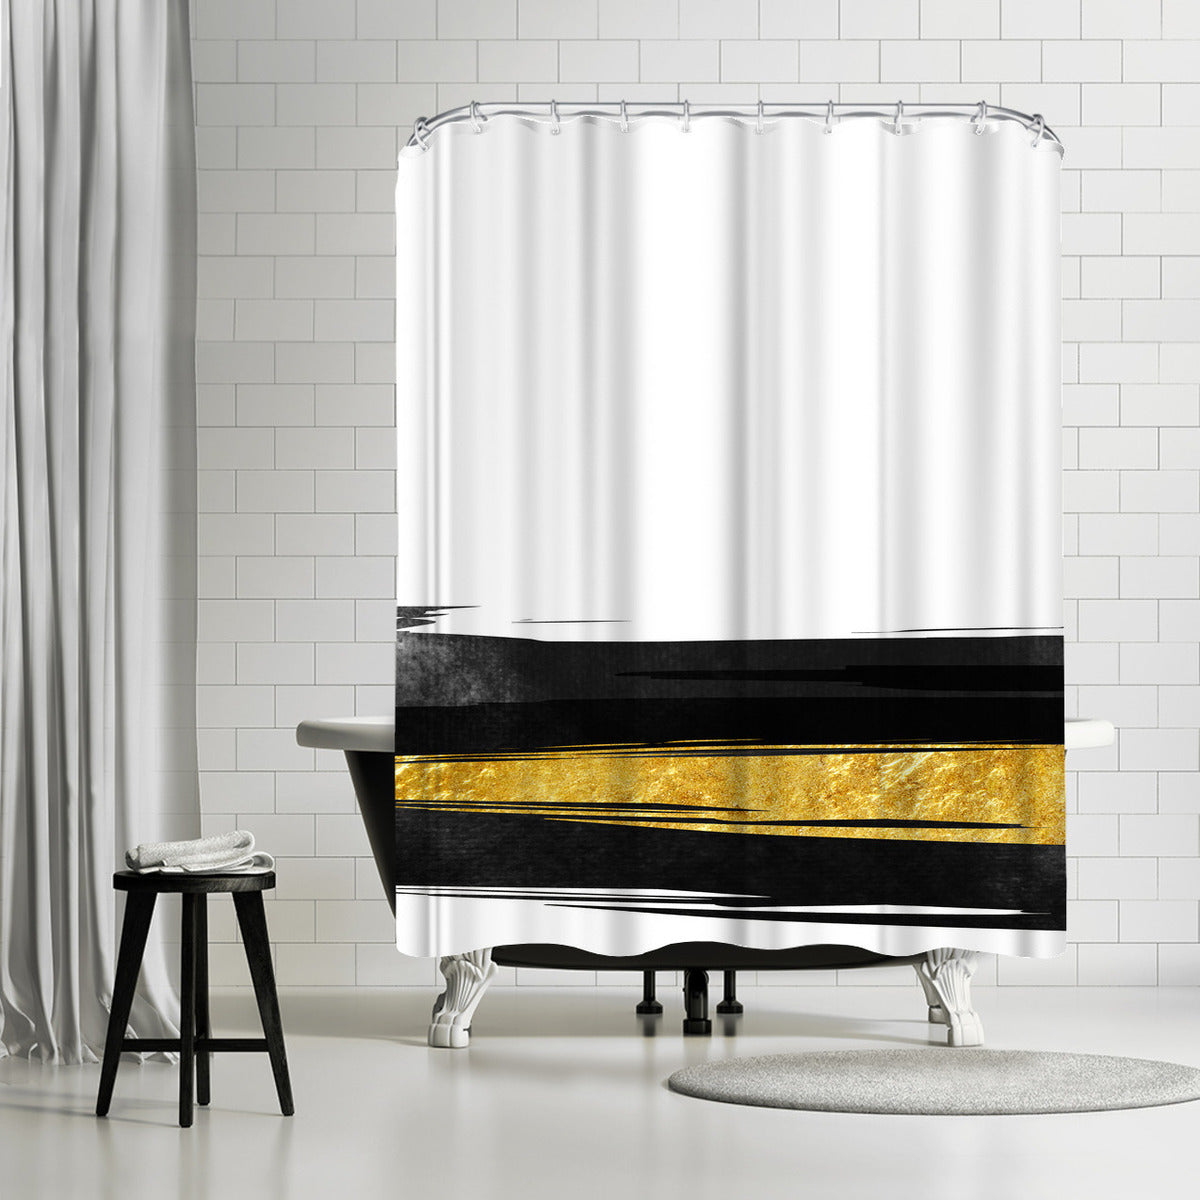 Golden Stripes by Emanuela Carratoni Shower Curtain - Shower Curtain - Americanflat